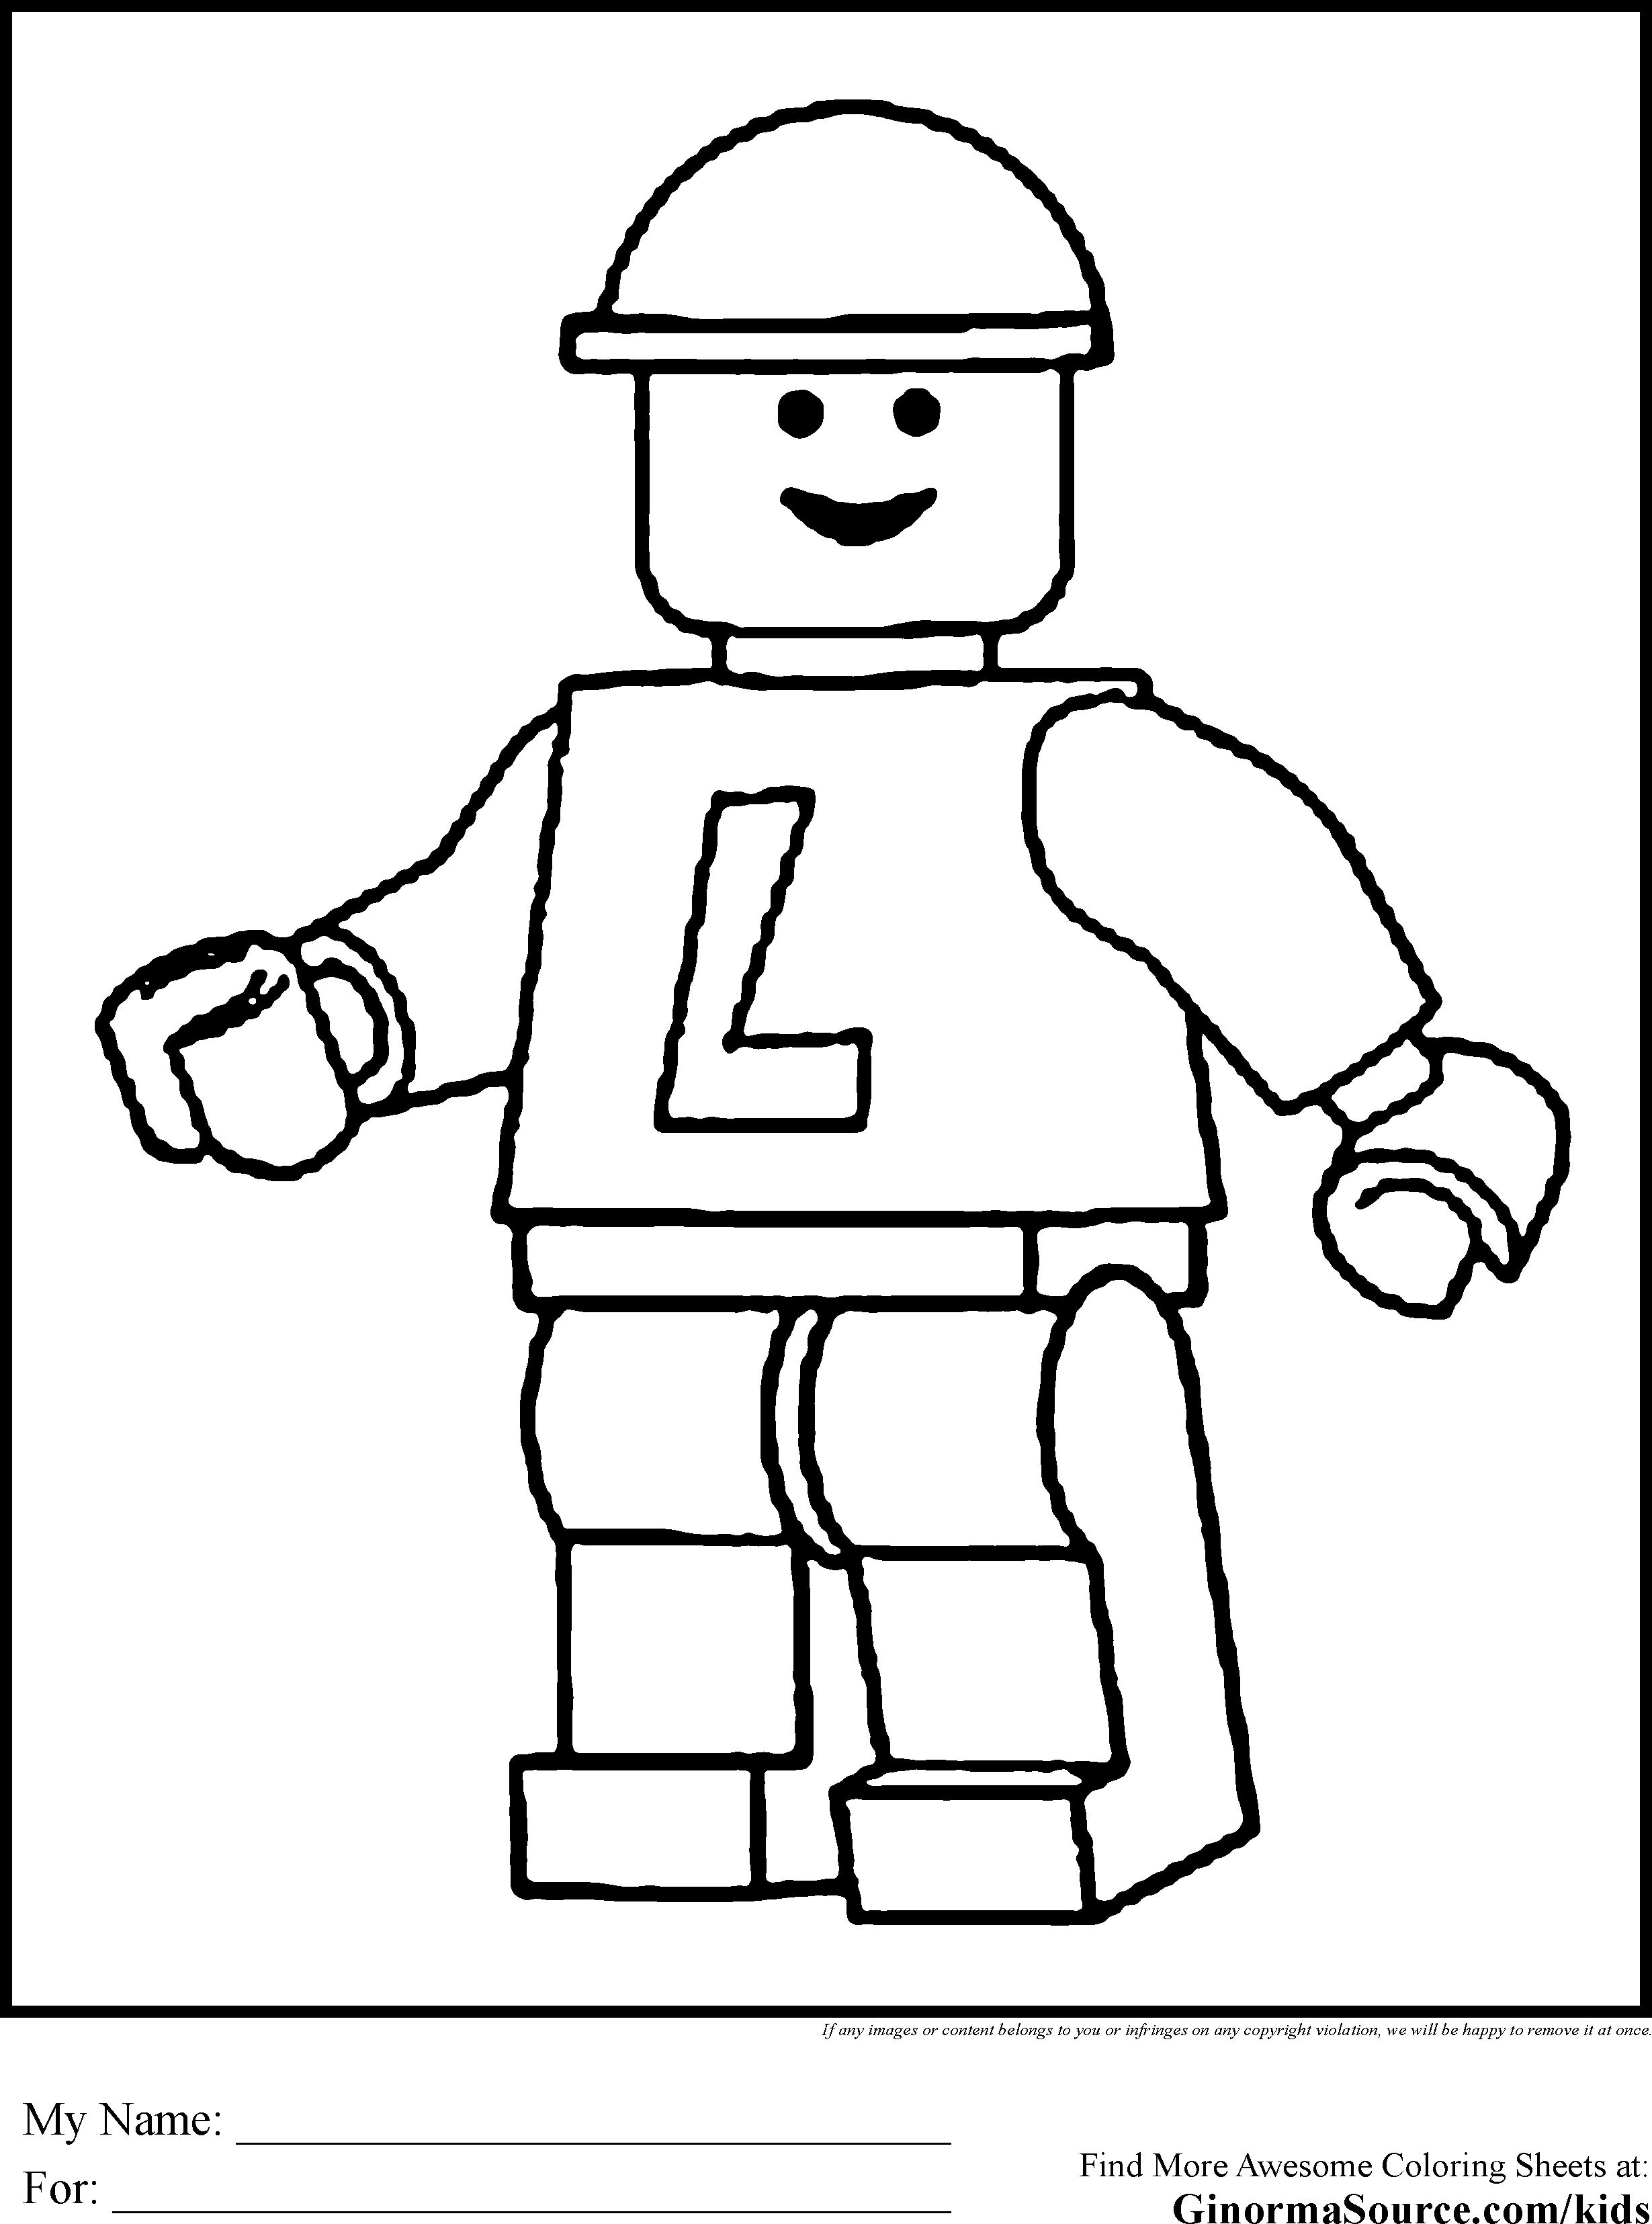 sutter health lego coloring pages - photo#11